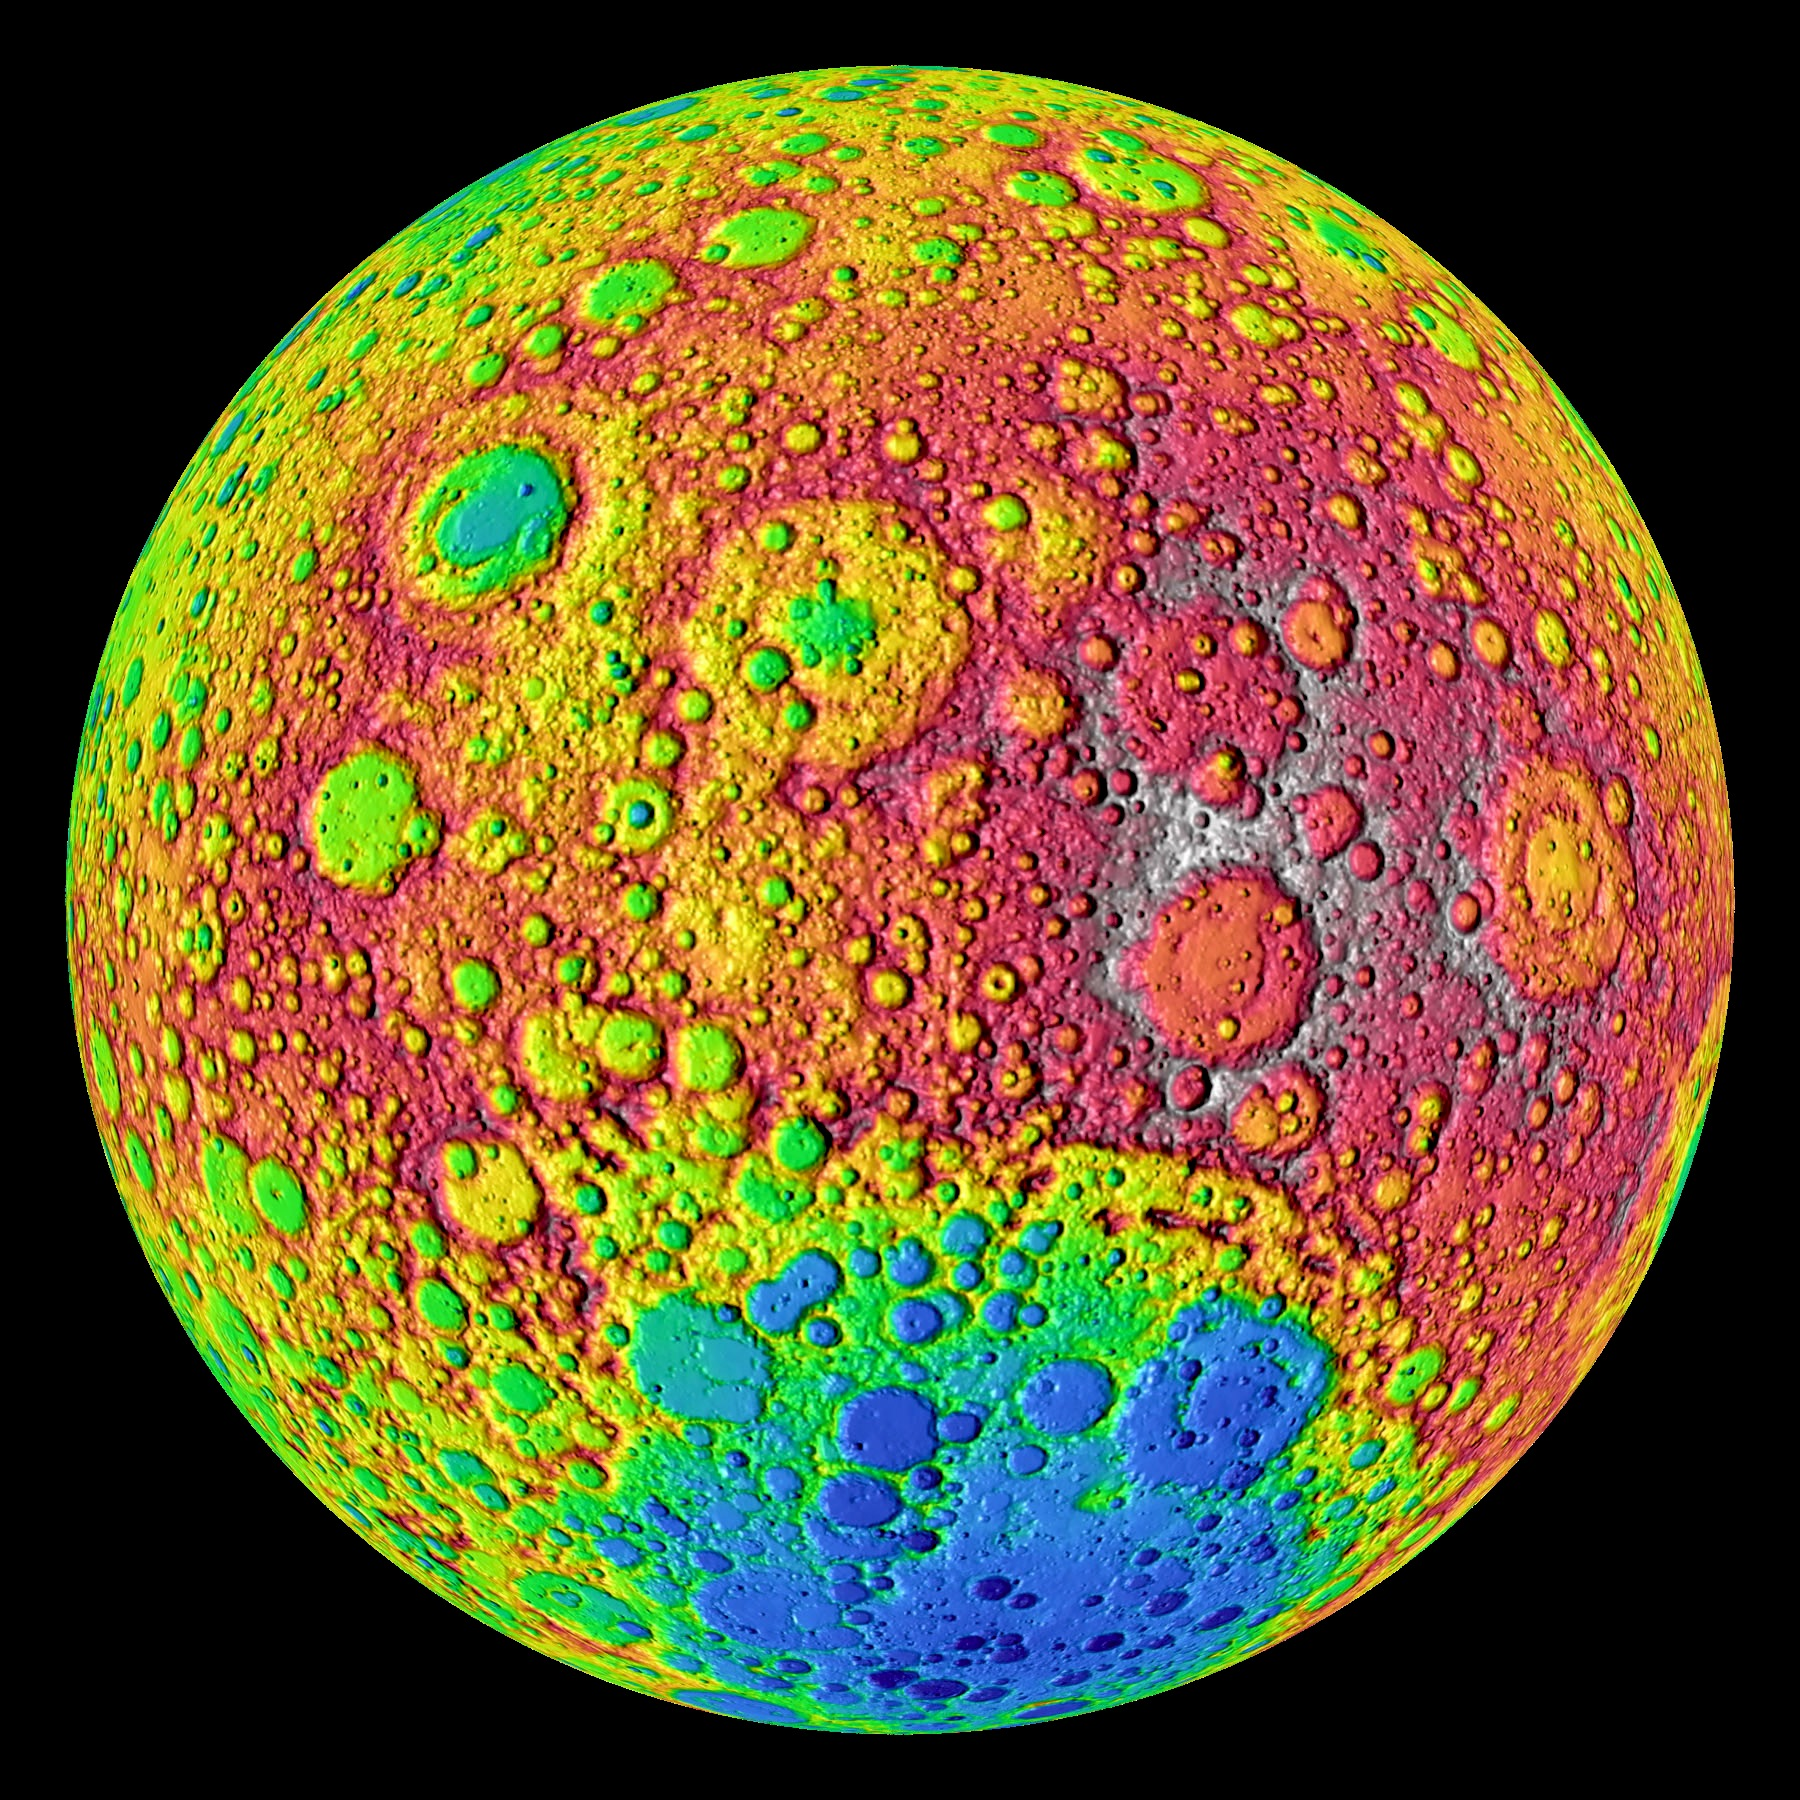 NASA - Ten Cool Things Seen in the First Year of LRO